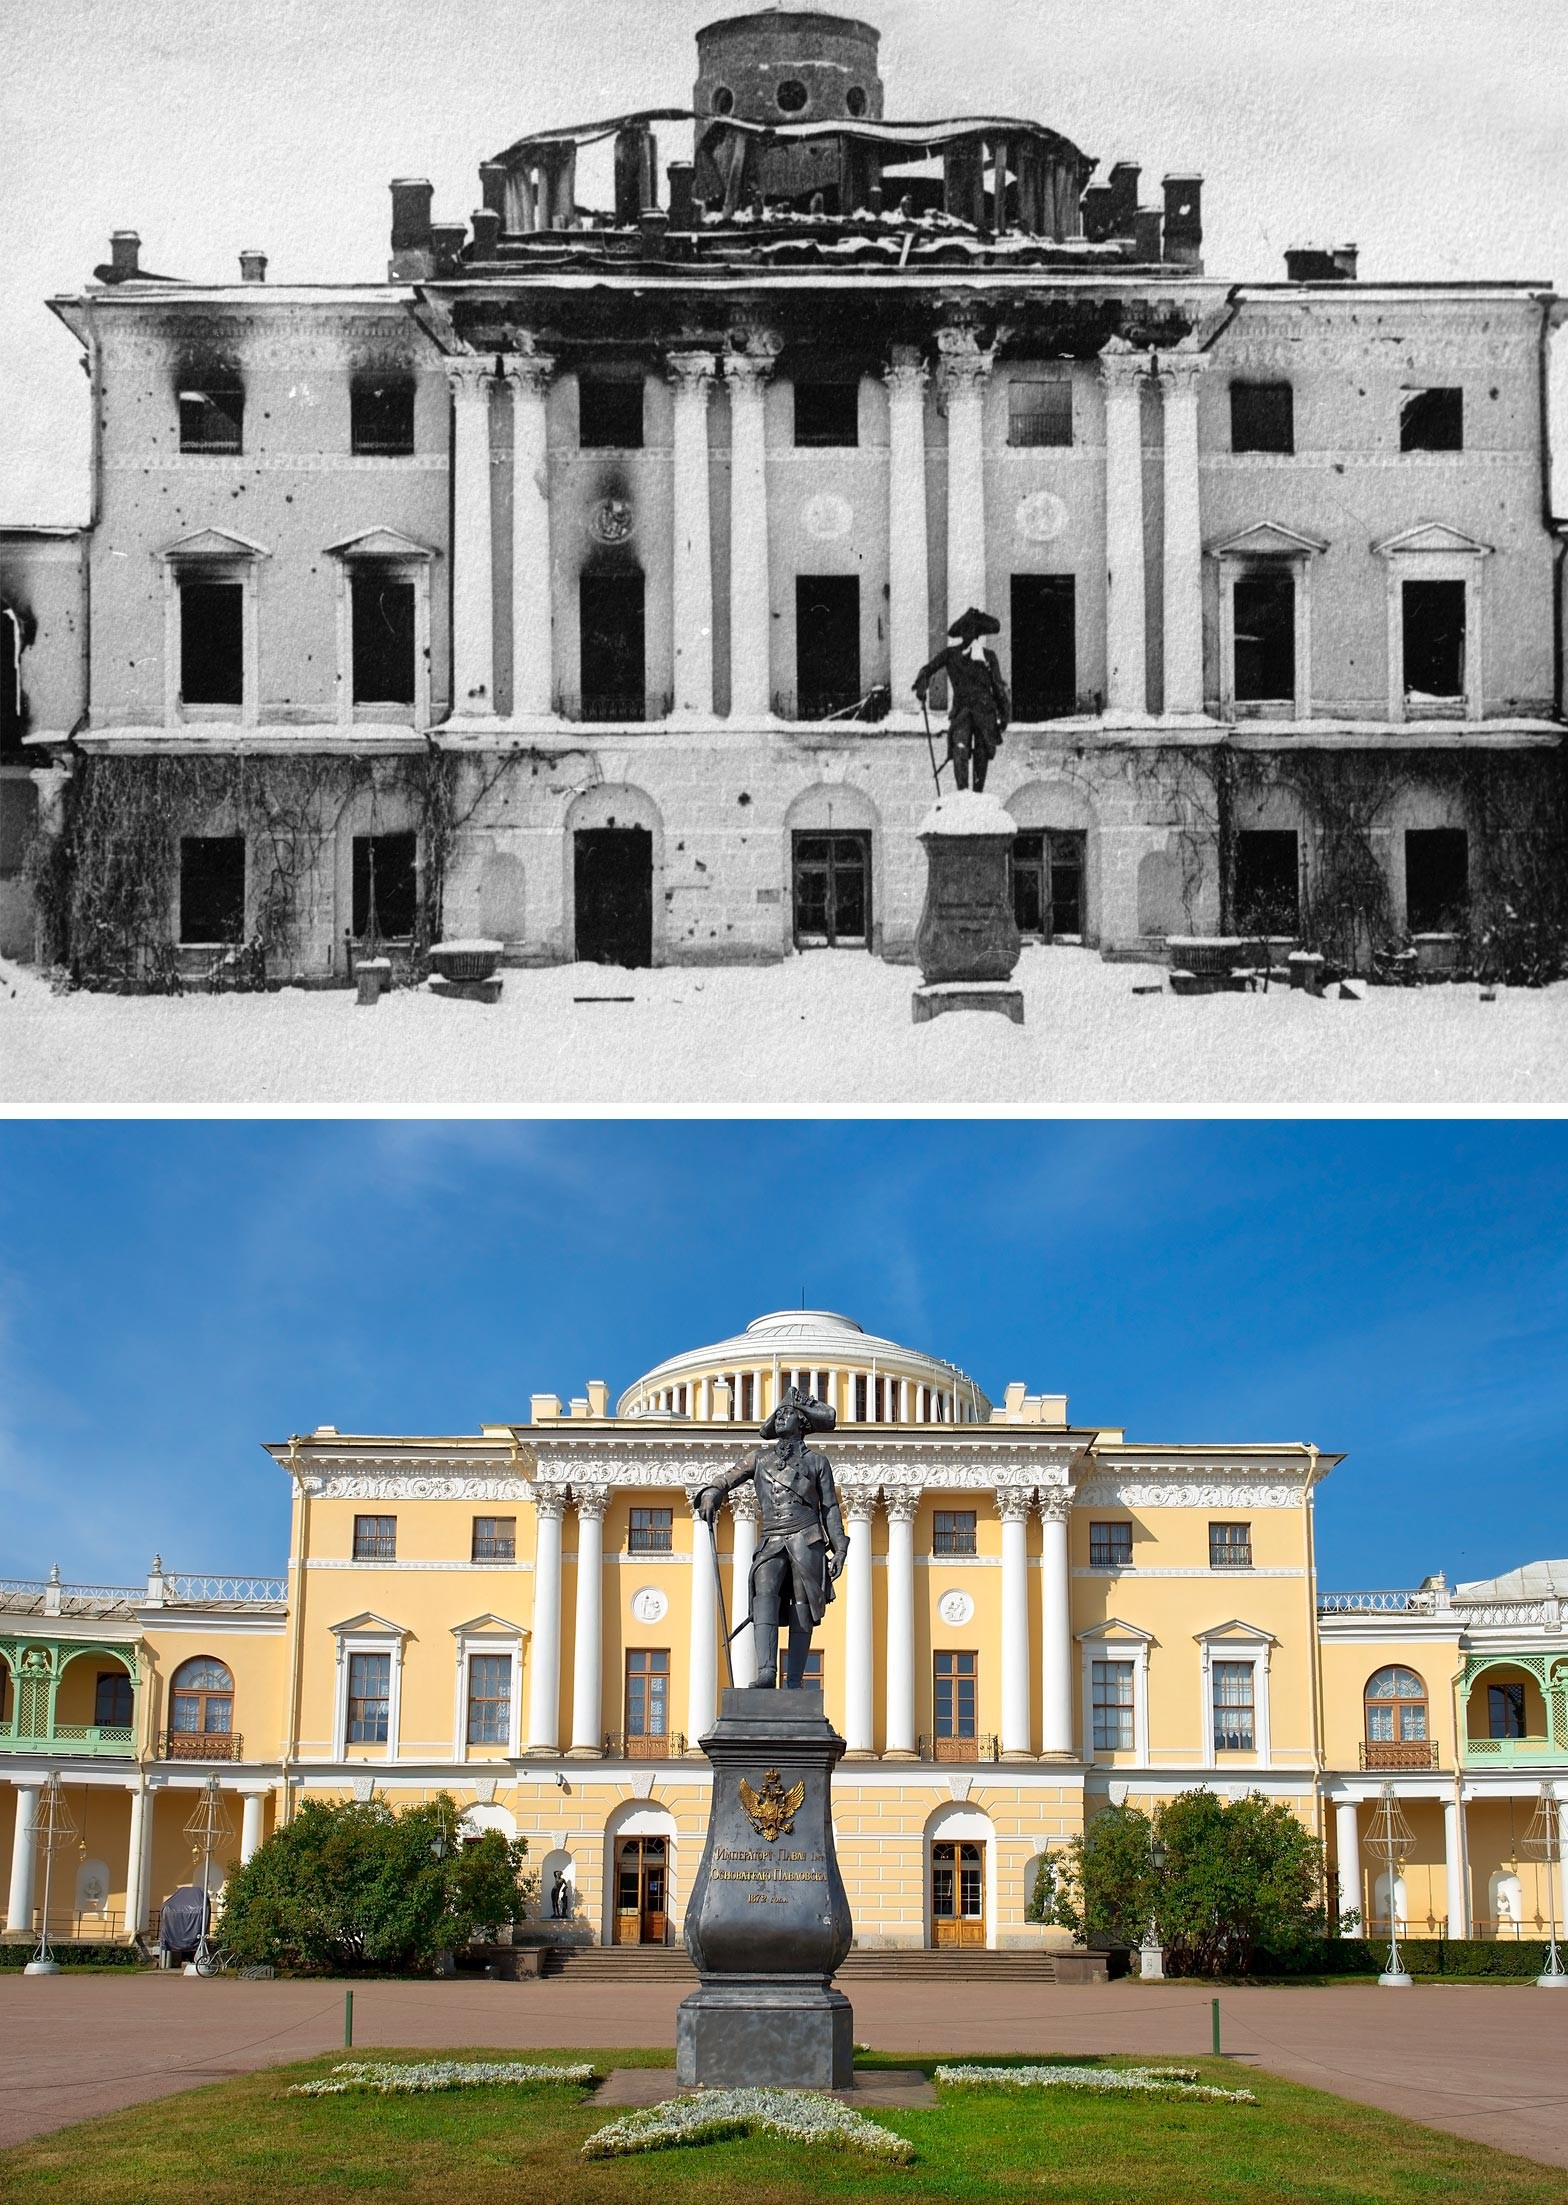 The Pavlovsk Palace in 1944 and now